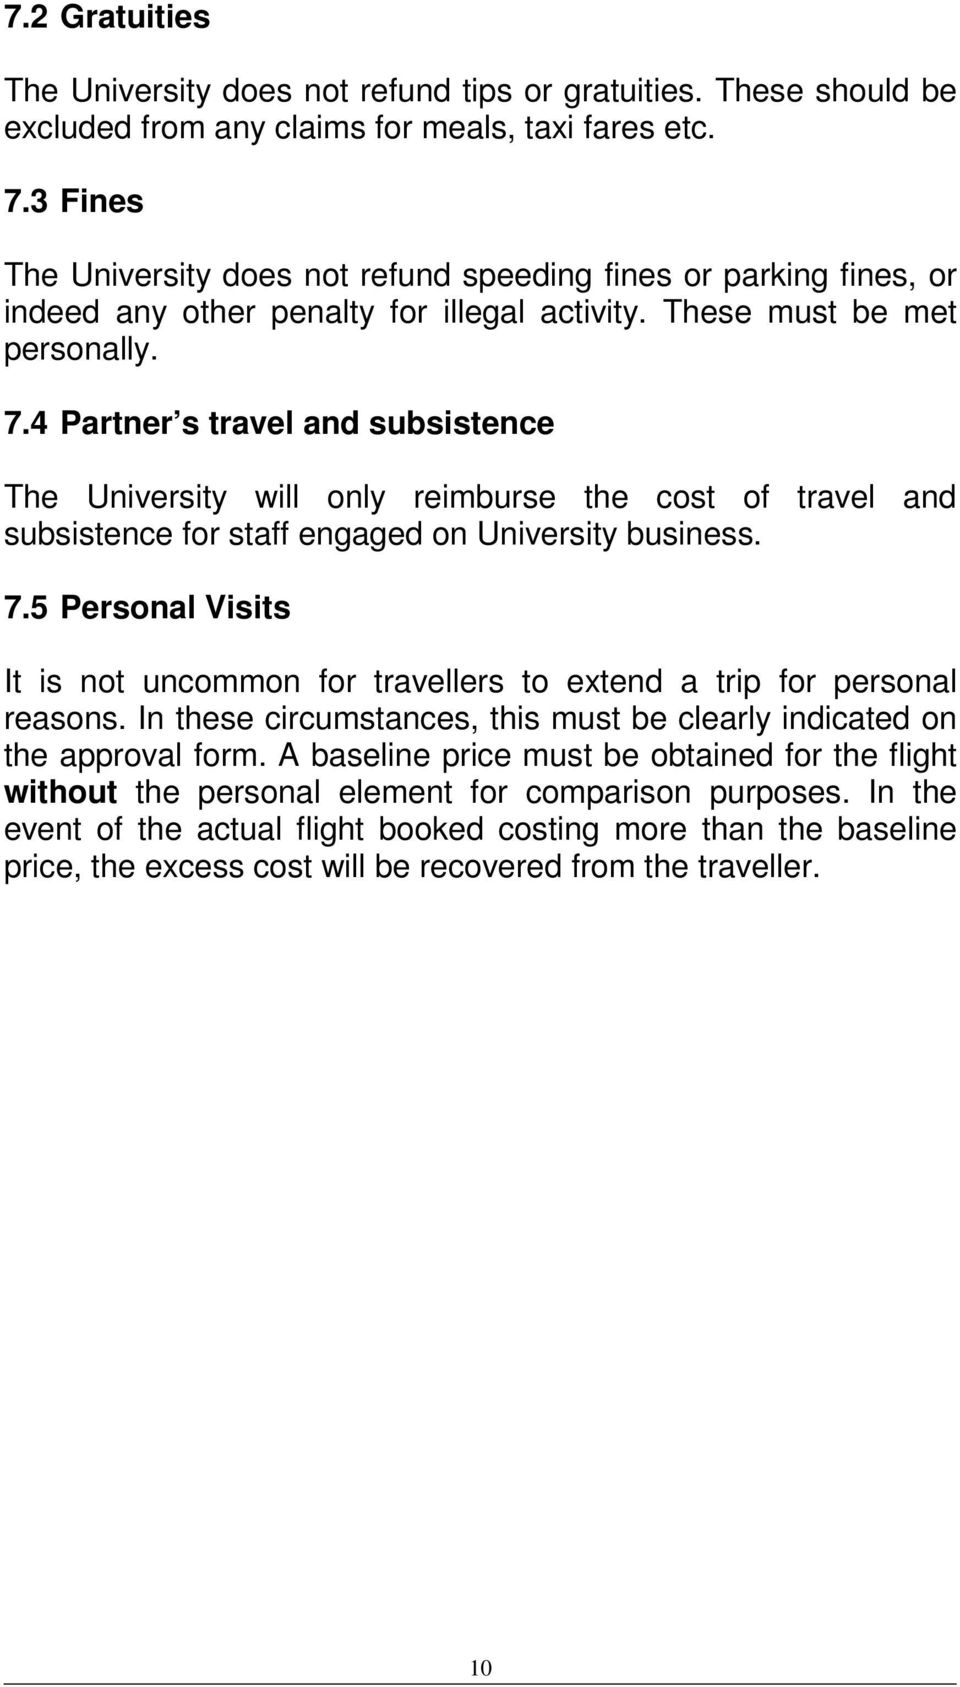 4 Partner s travel and subsistence The University will only reimburse the cost of travel and subsistence for staff engaged on University business. 7.